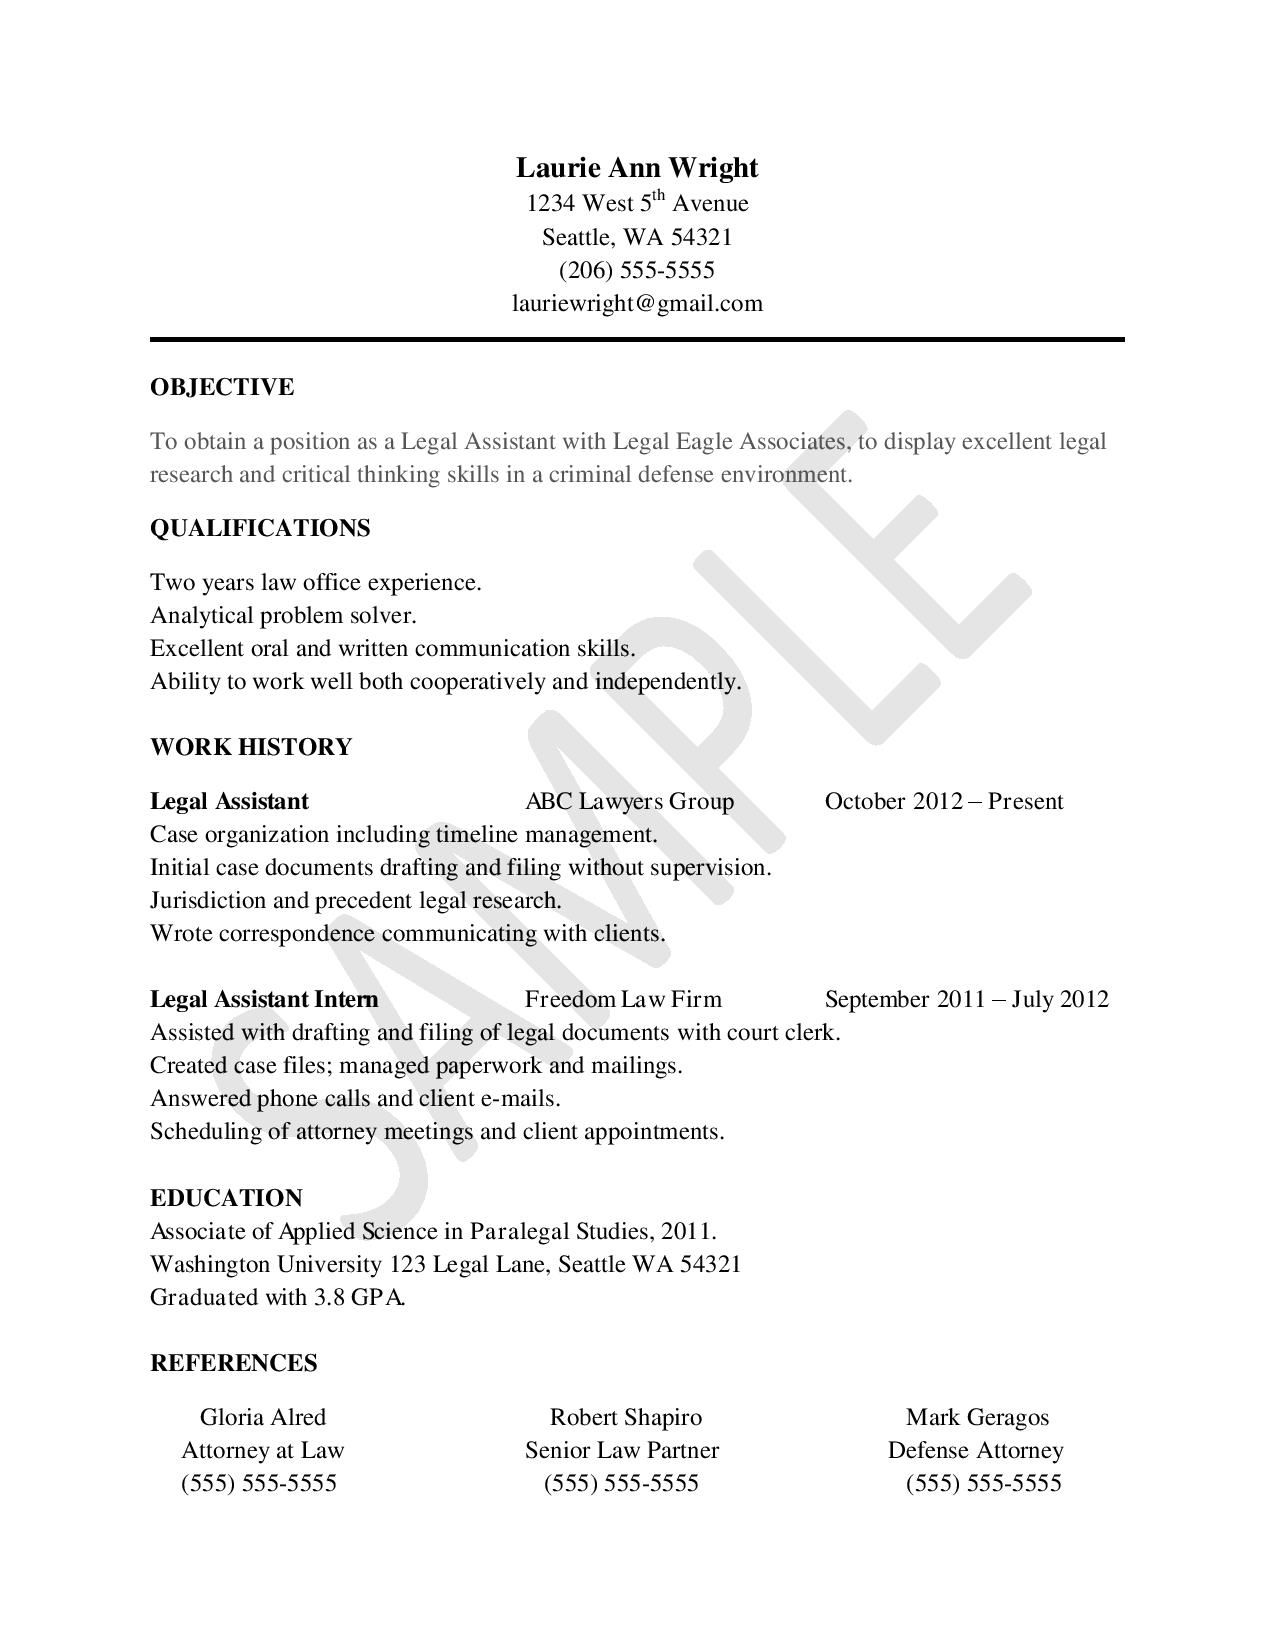 Paralegal Cover Letter Sample Resume For Legal Assistants  Legalassistant